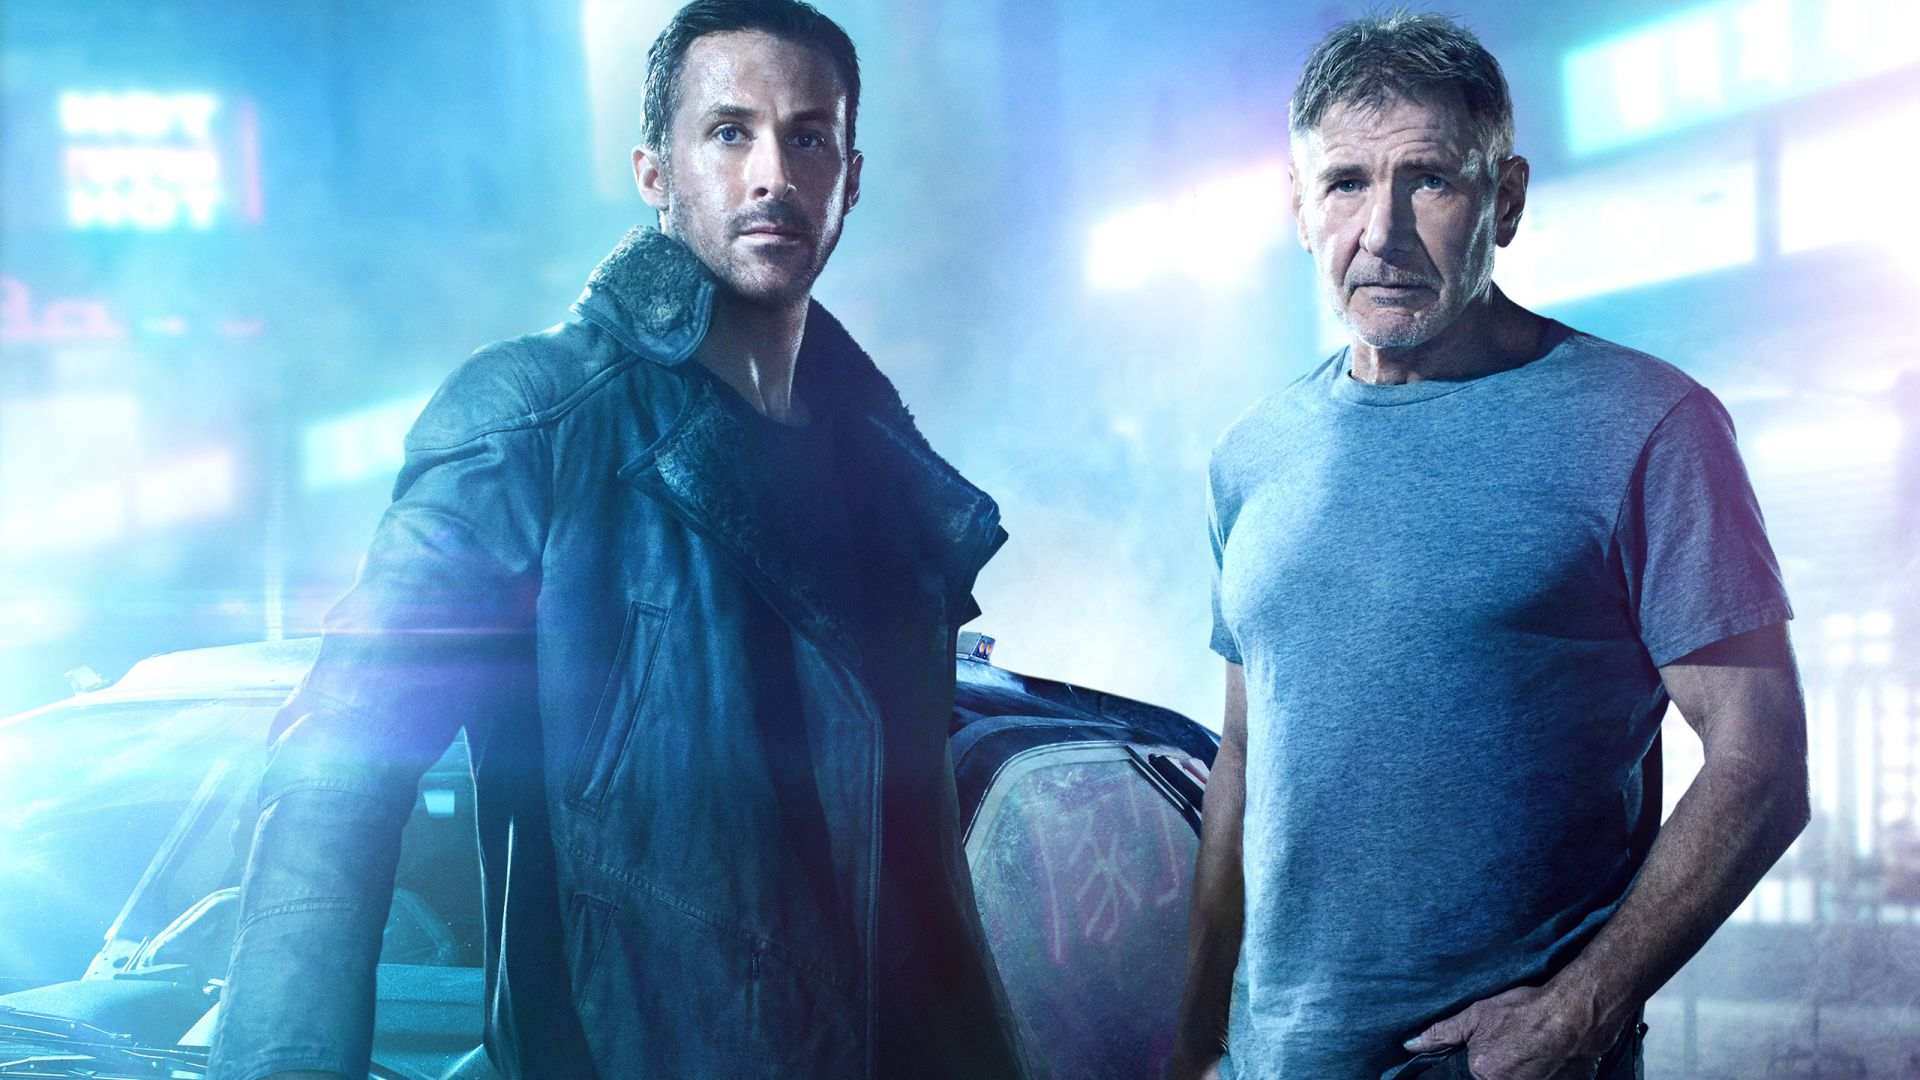 blade runner Like blade runner, the question at the center of blade runner 2049 concerns what it means to be human, and whether replicants are, in fact, people.